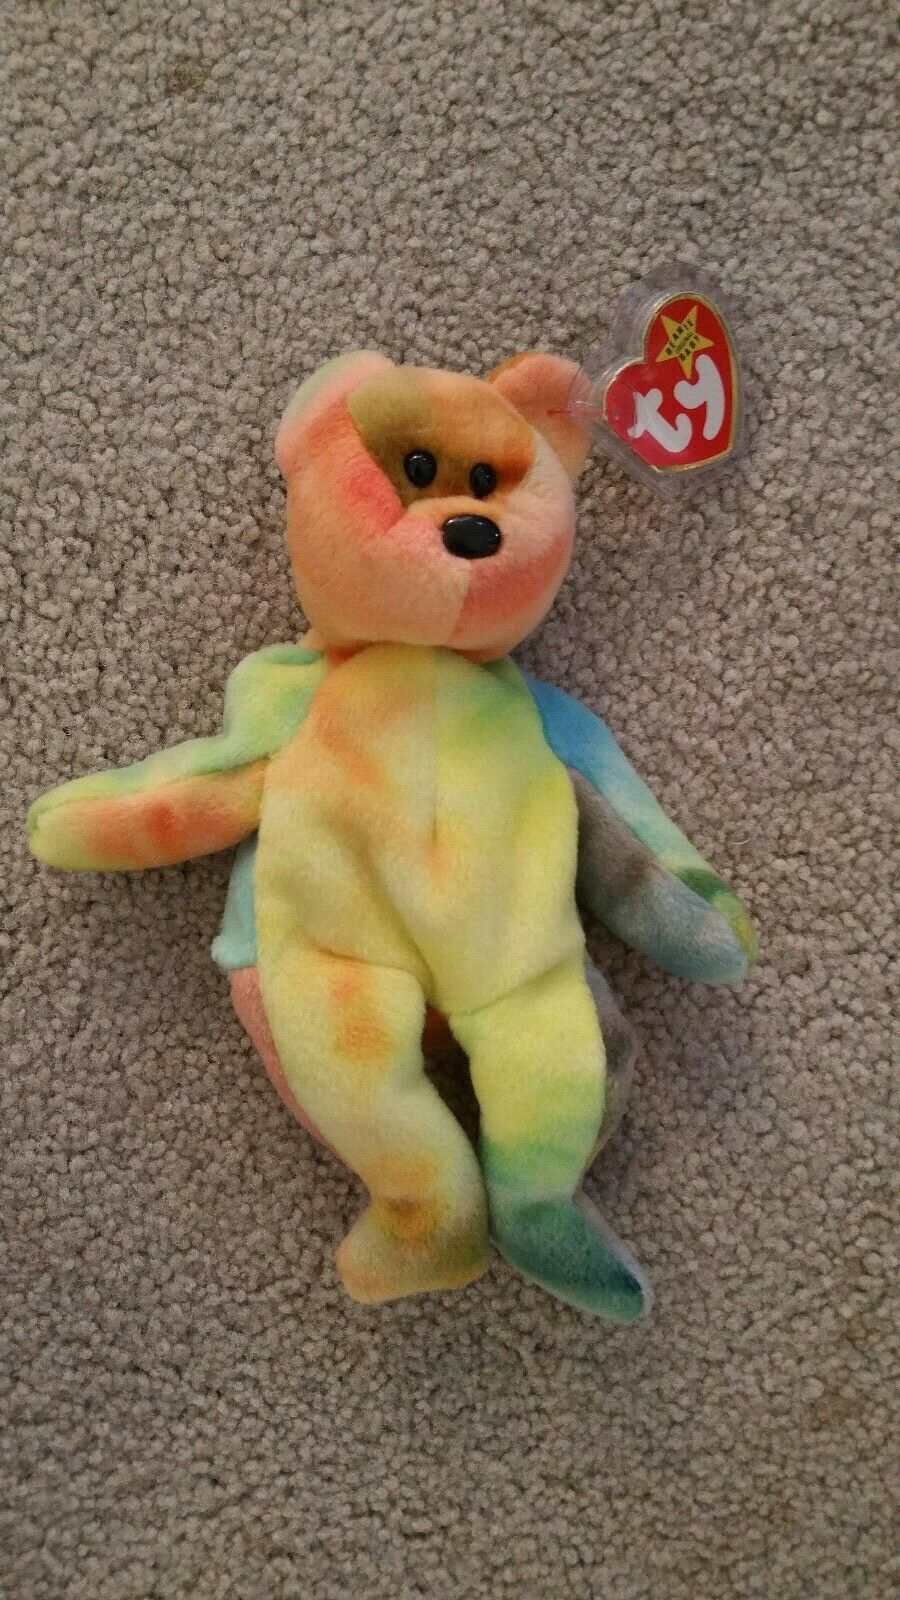 Ty beanie babies Garcia Lots of Yellow, great colors